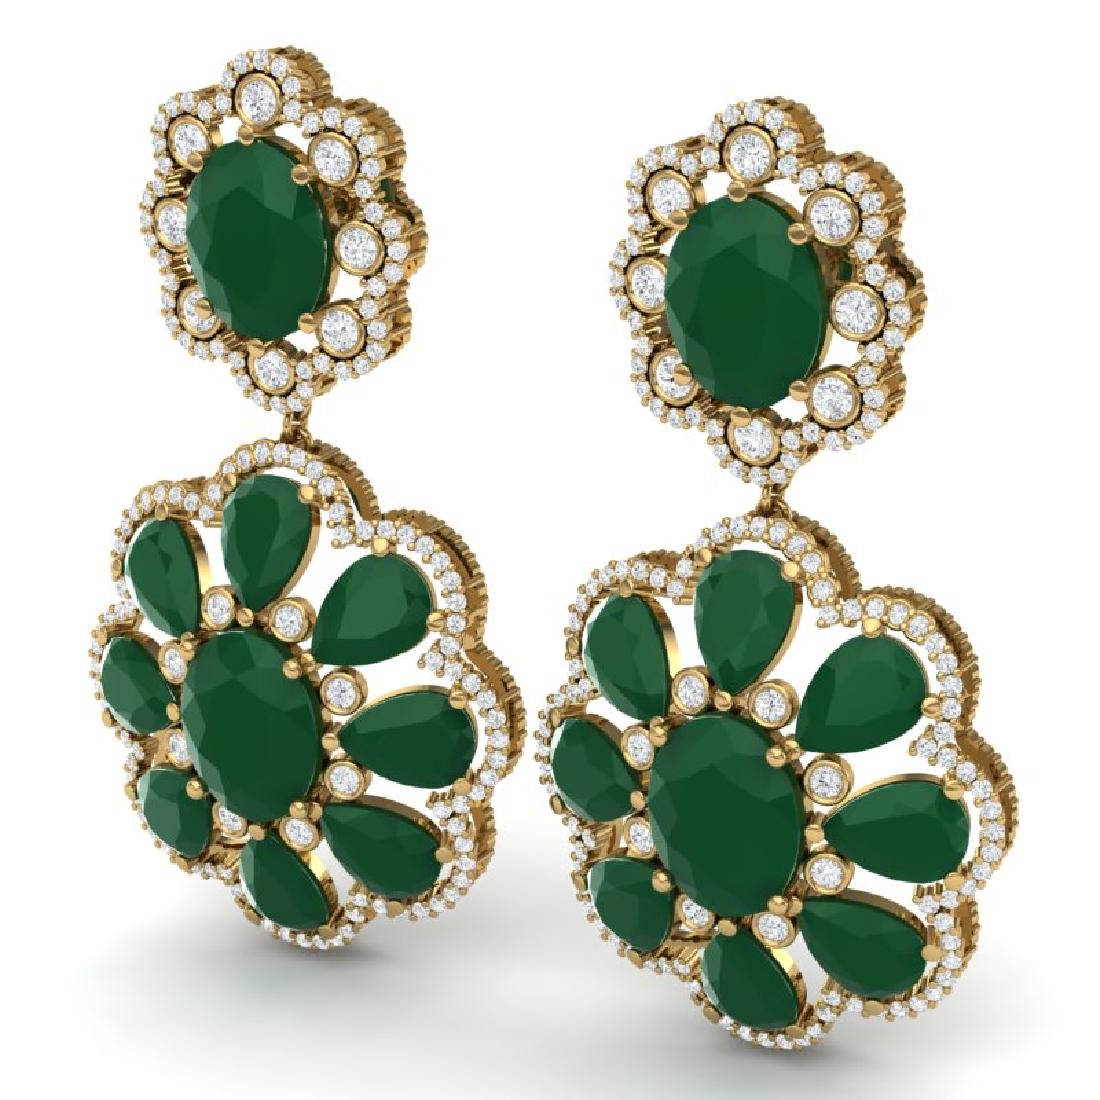 33.88 CTW Royalty Emerald & VS Diamond Earrings 18K - 2